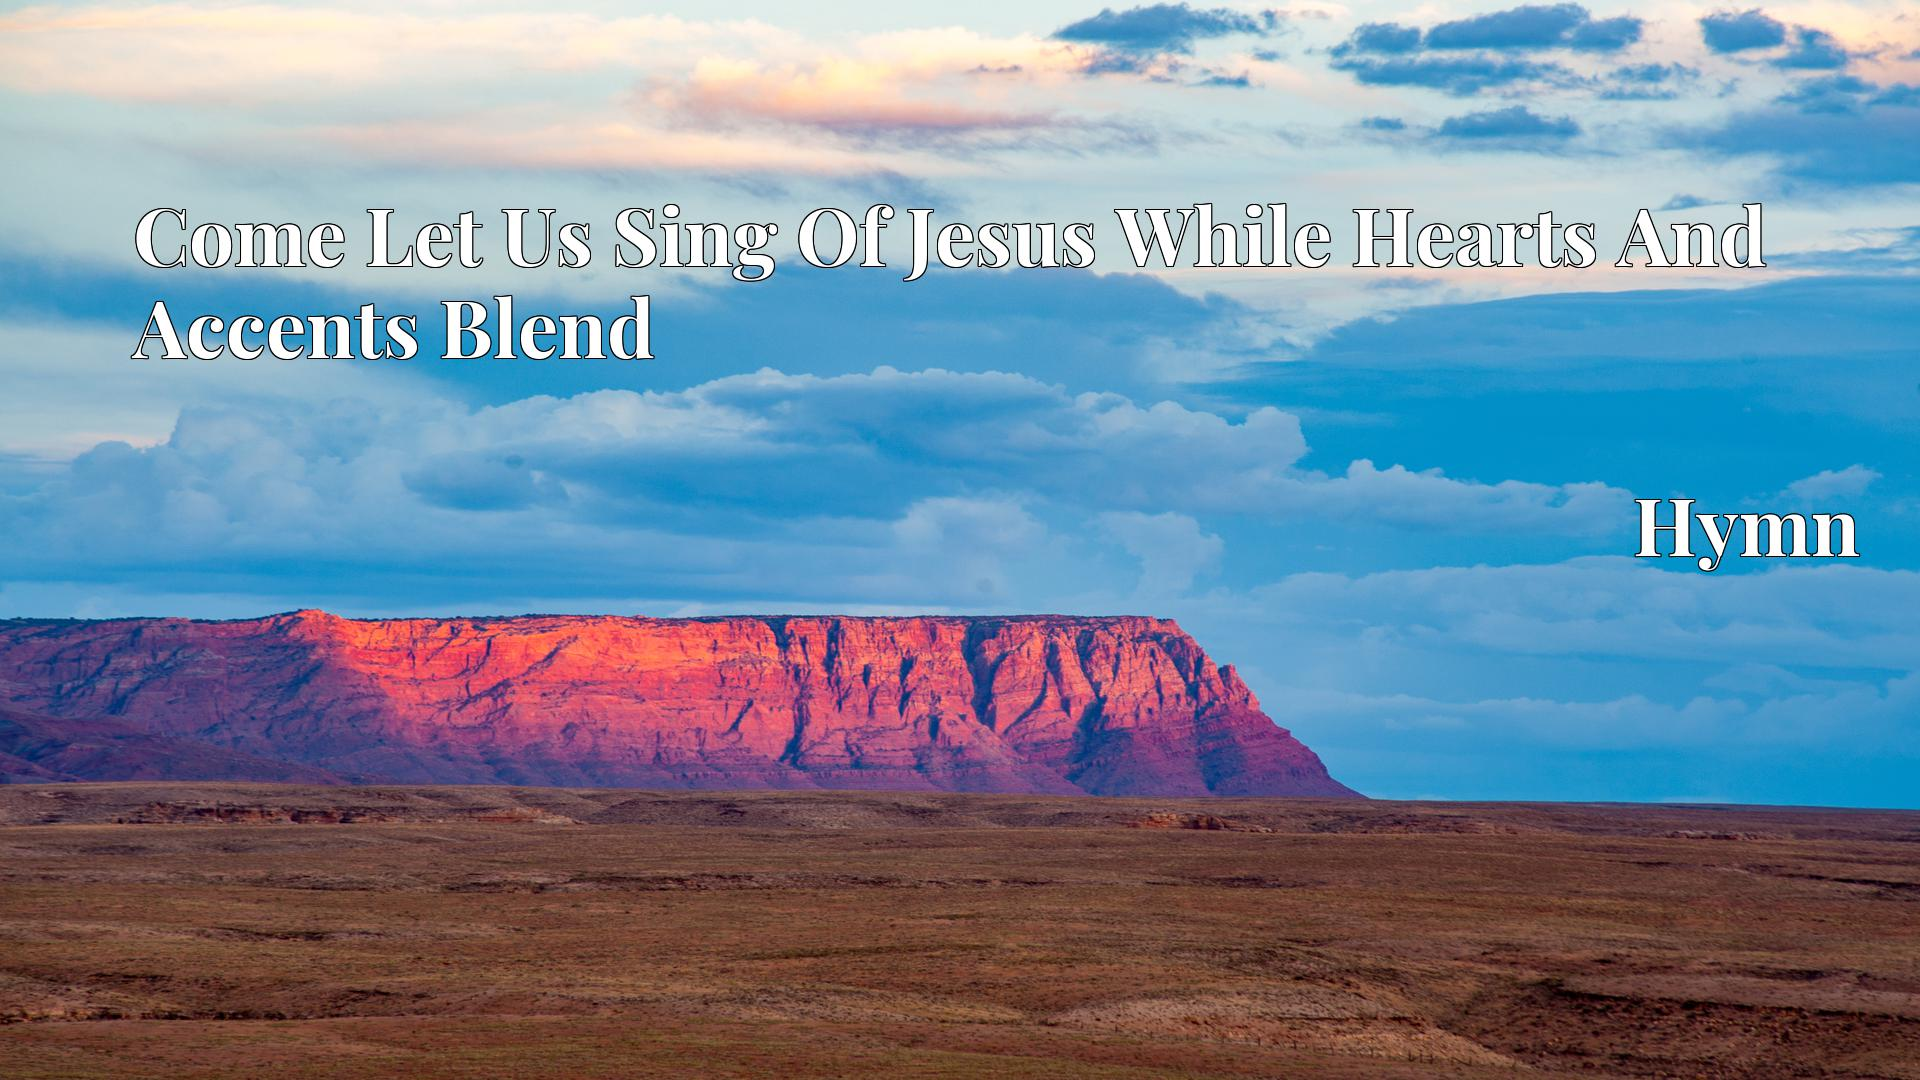 Come Let Us Sing Of Jesus While Hearts And Accents Blend - Hymn